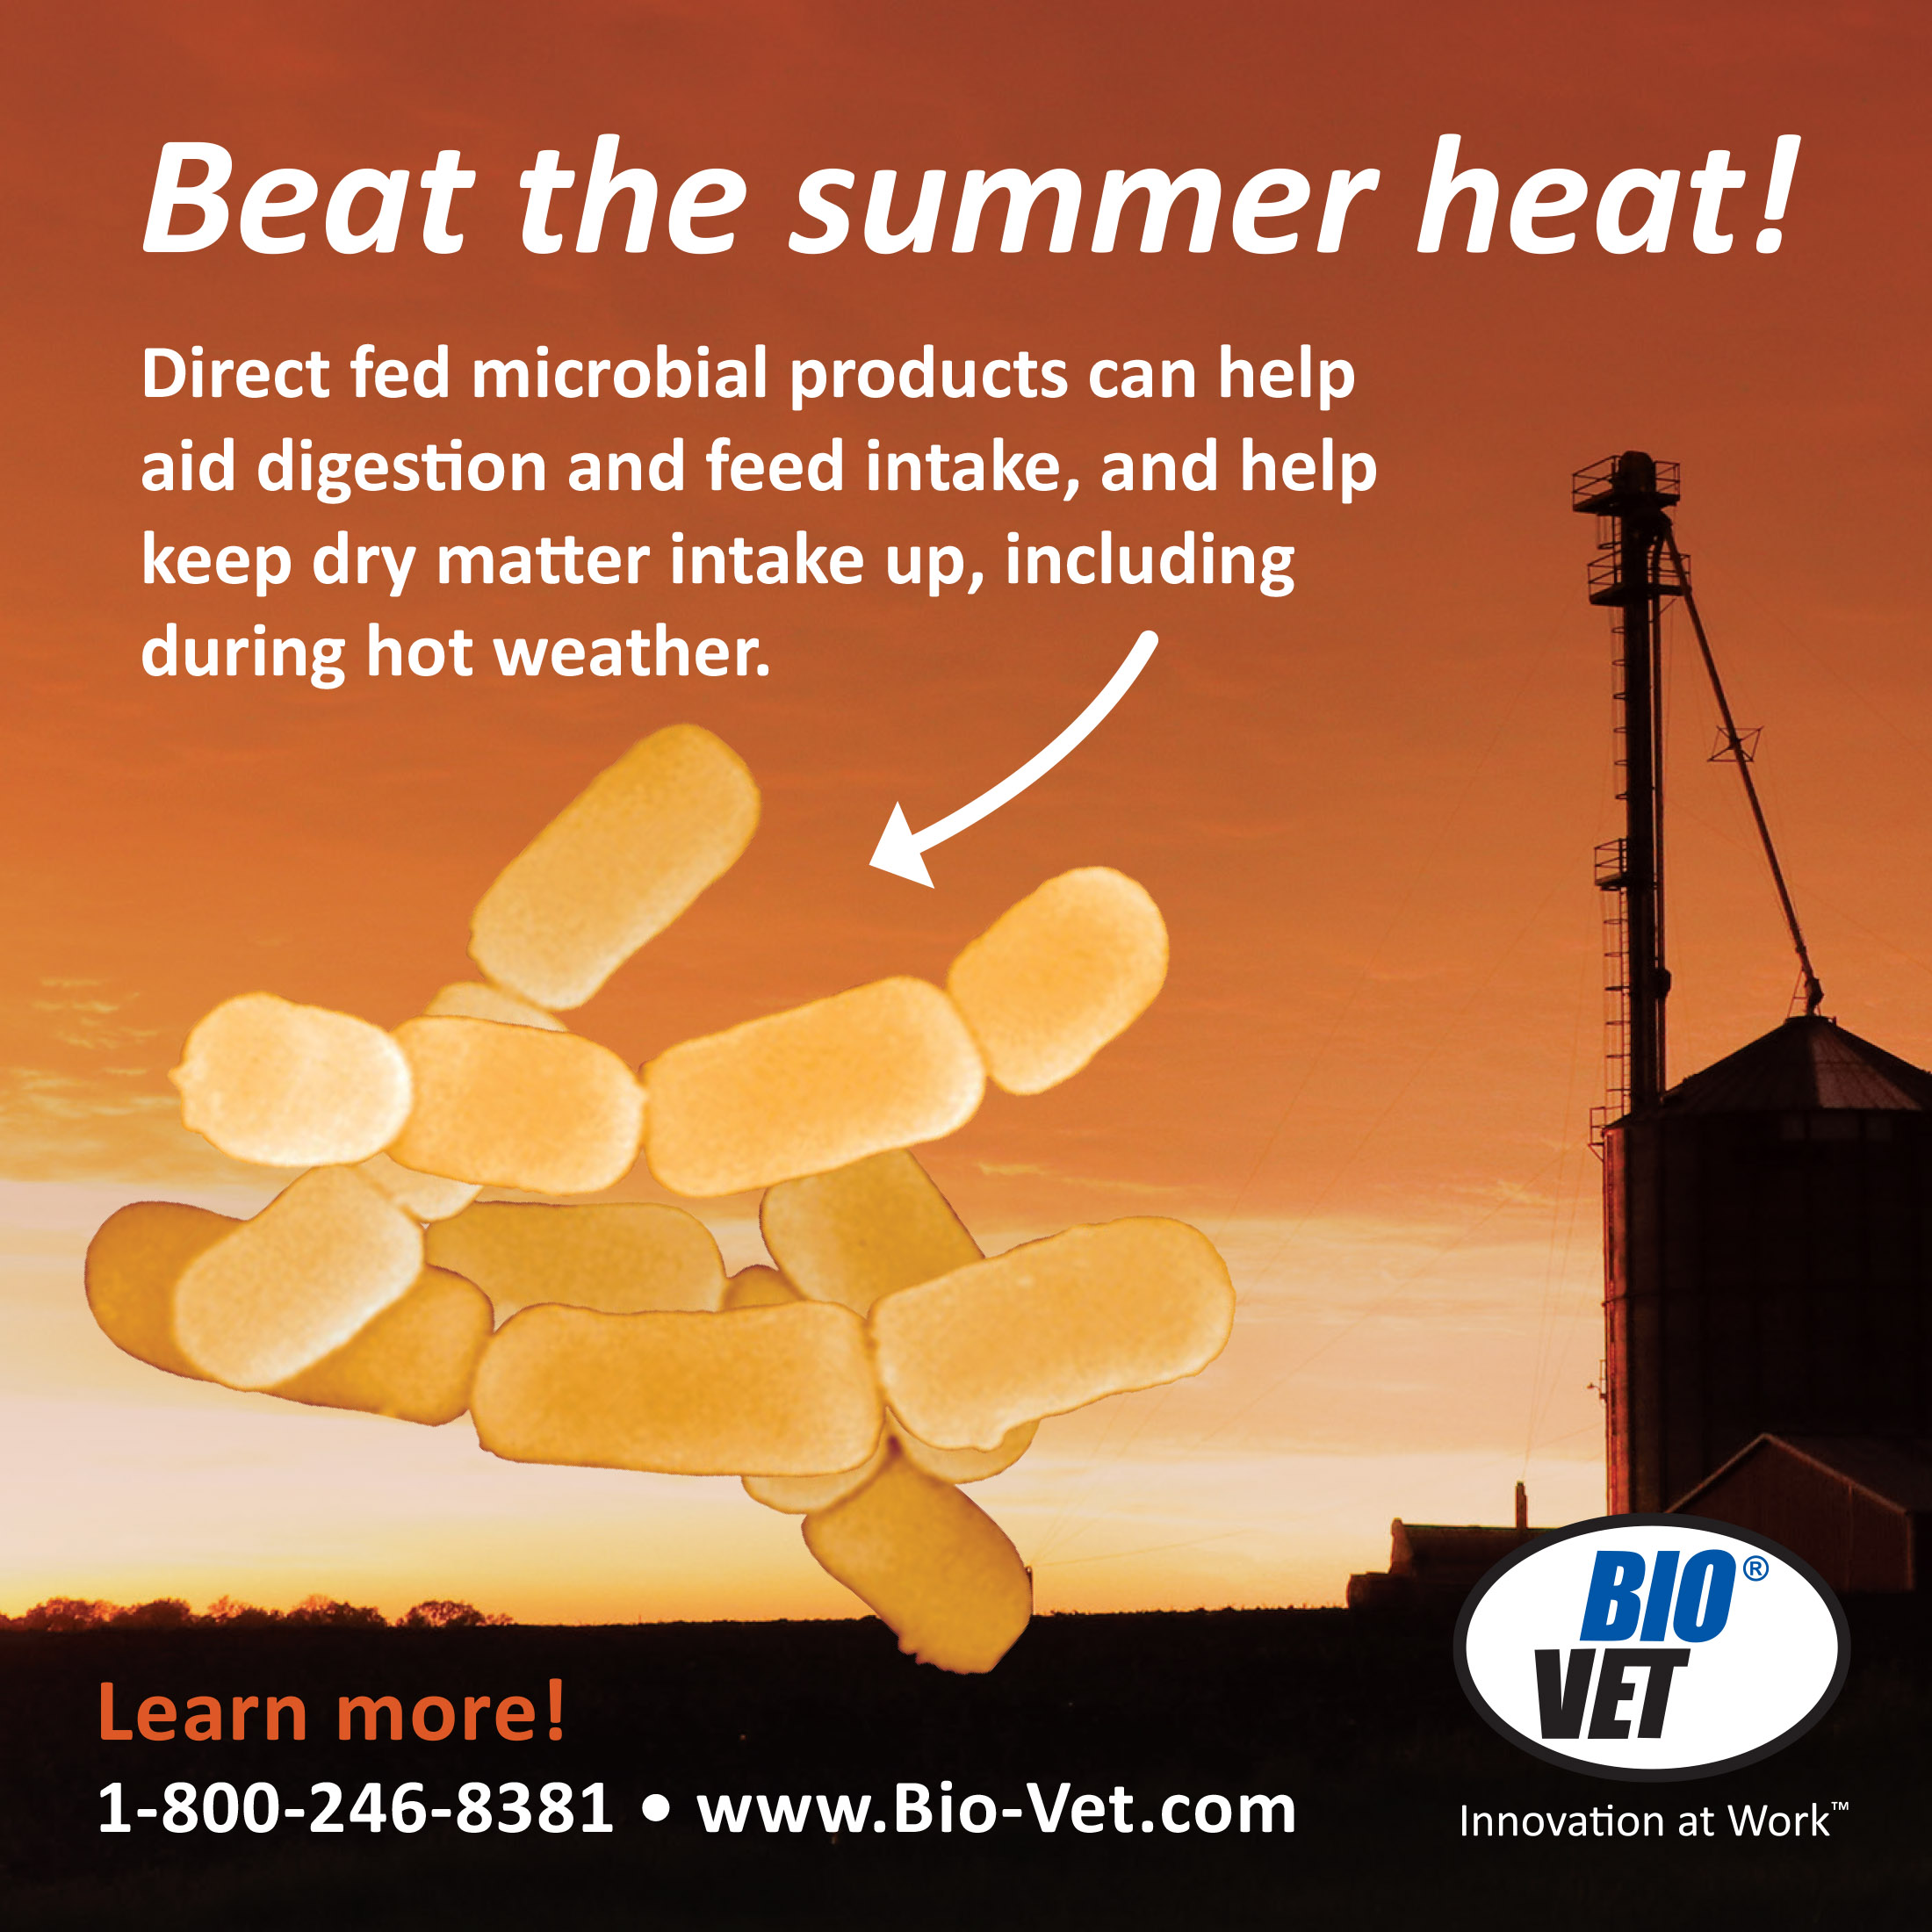 Beat the summer heat with DFMs